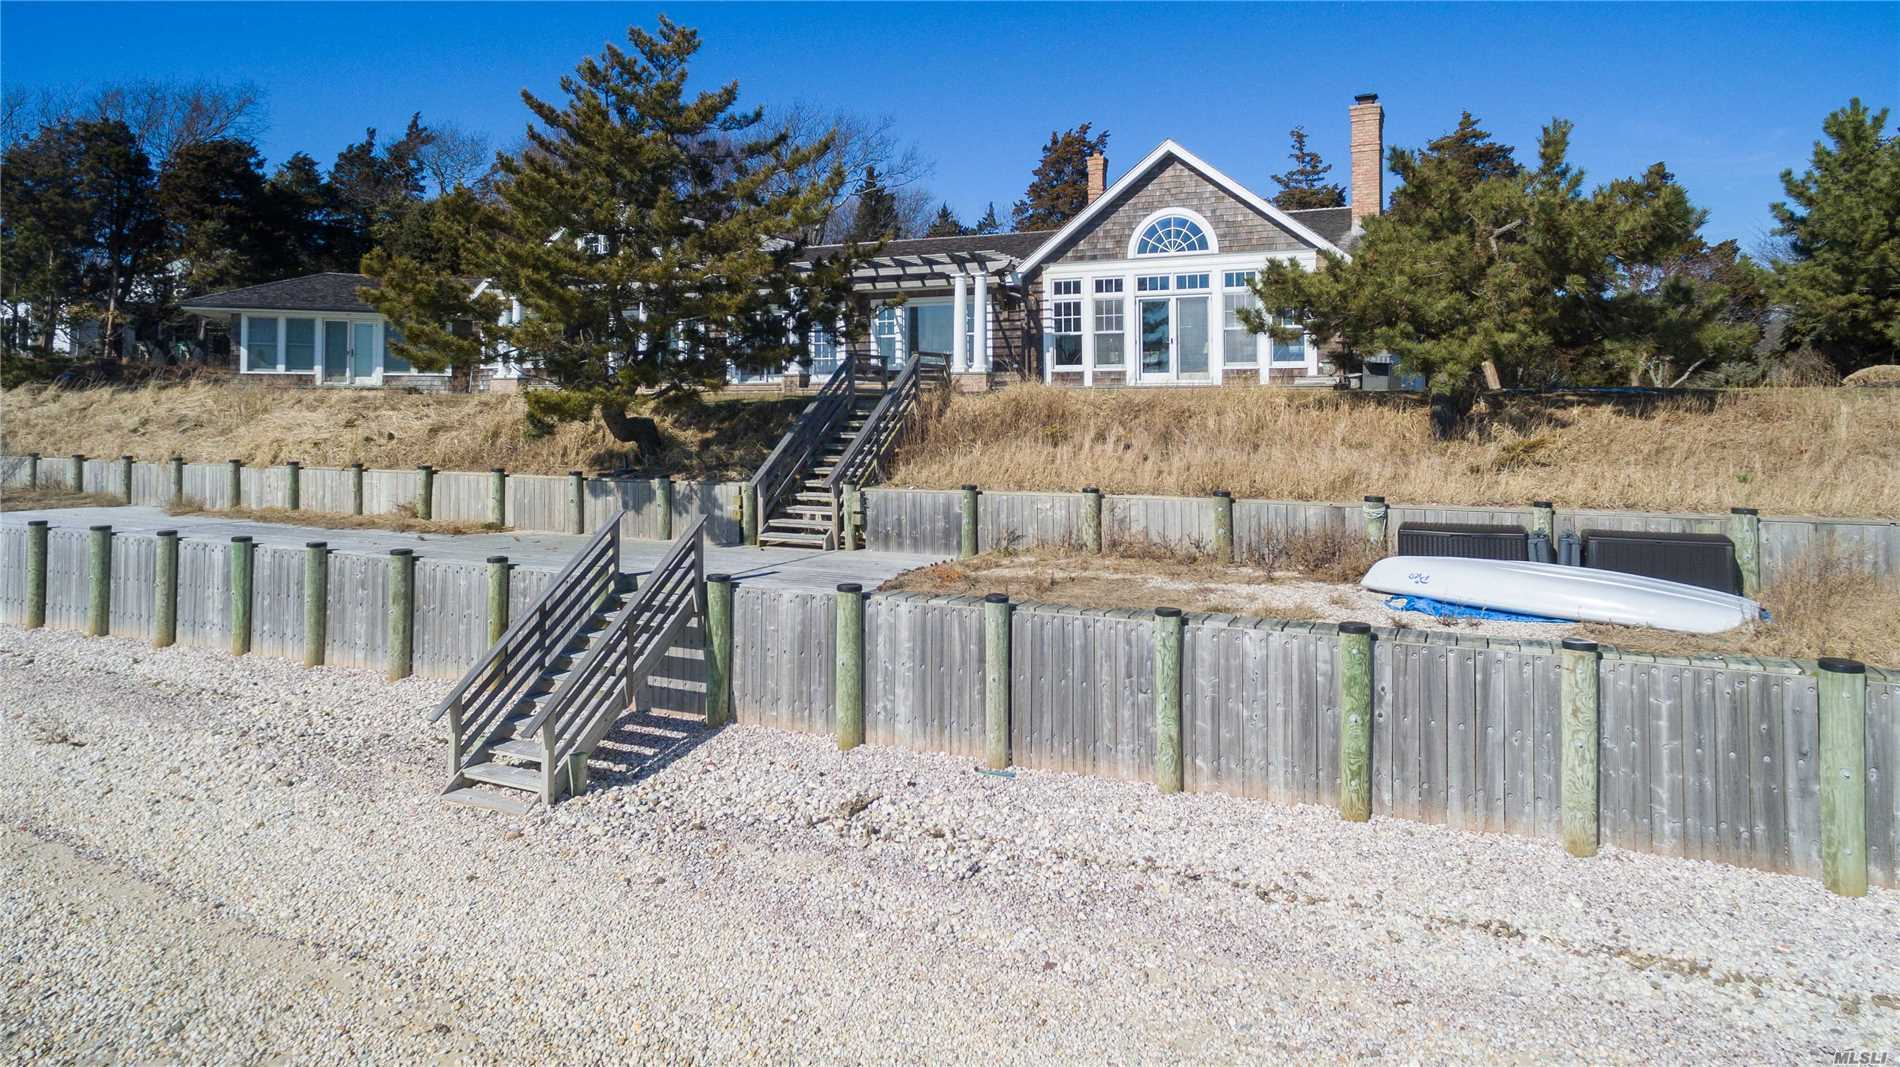 1st Time Offered. Gorgeous Nantucket Style Home. Gut Renovated. 200' Direct Waterfront And Beach With Incredible Views From All Principal Rooms. Slate Patios, Beach Decks And Al Fresco Dining - All With Direct Water Access. Outdoor Shower And Yards Complete The Best In Coastal Living. 5 Bedrooms(King, Queen & 3 Fulls)